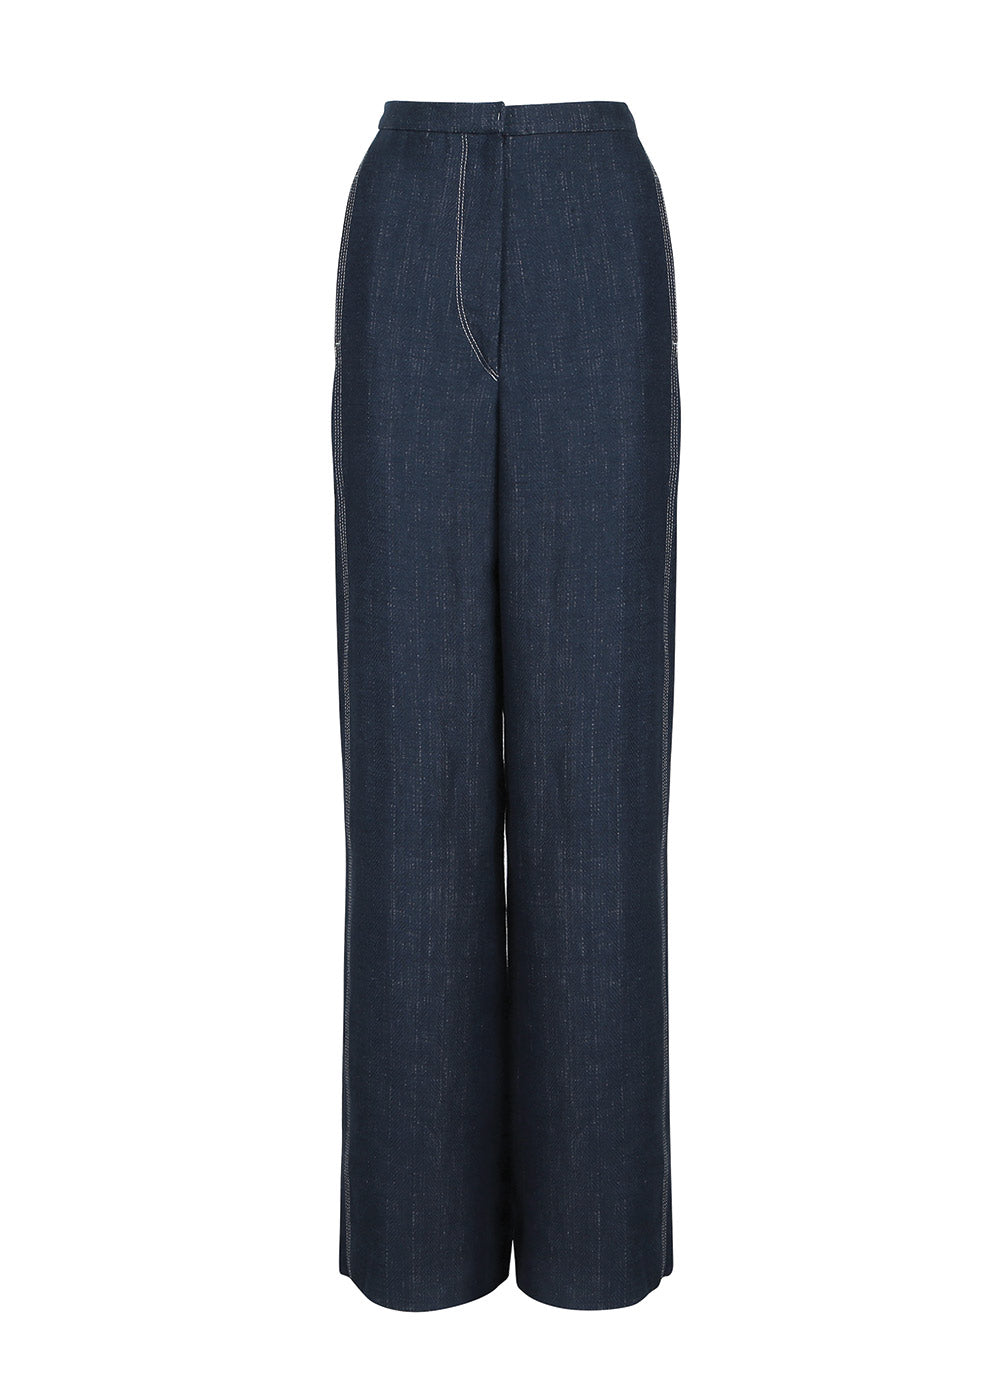 STITCHED PANTS NAVY